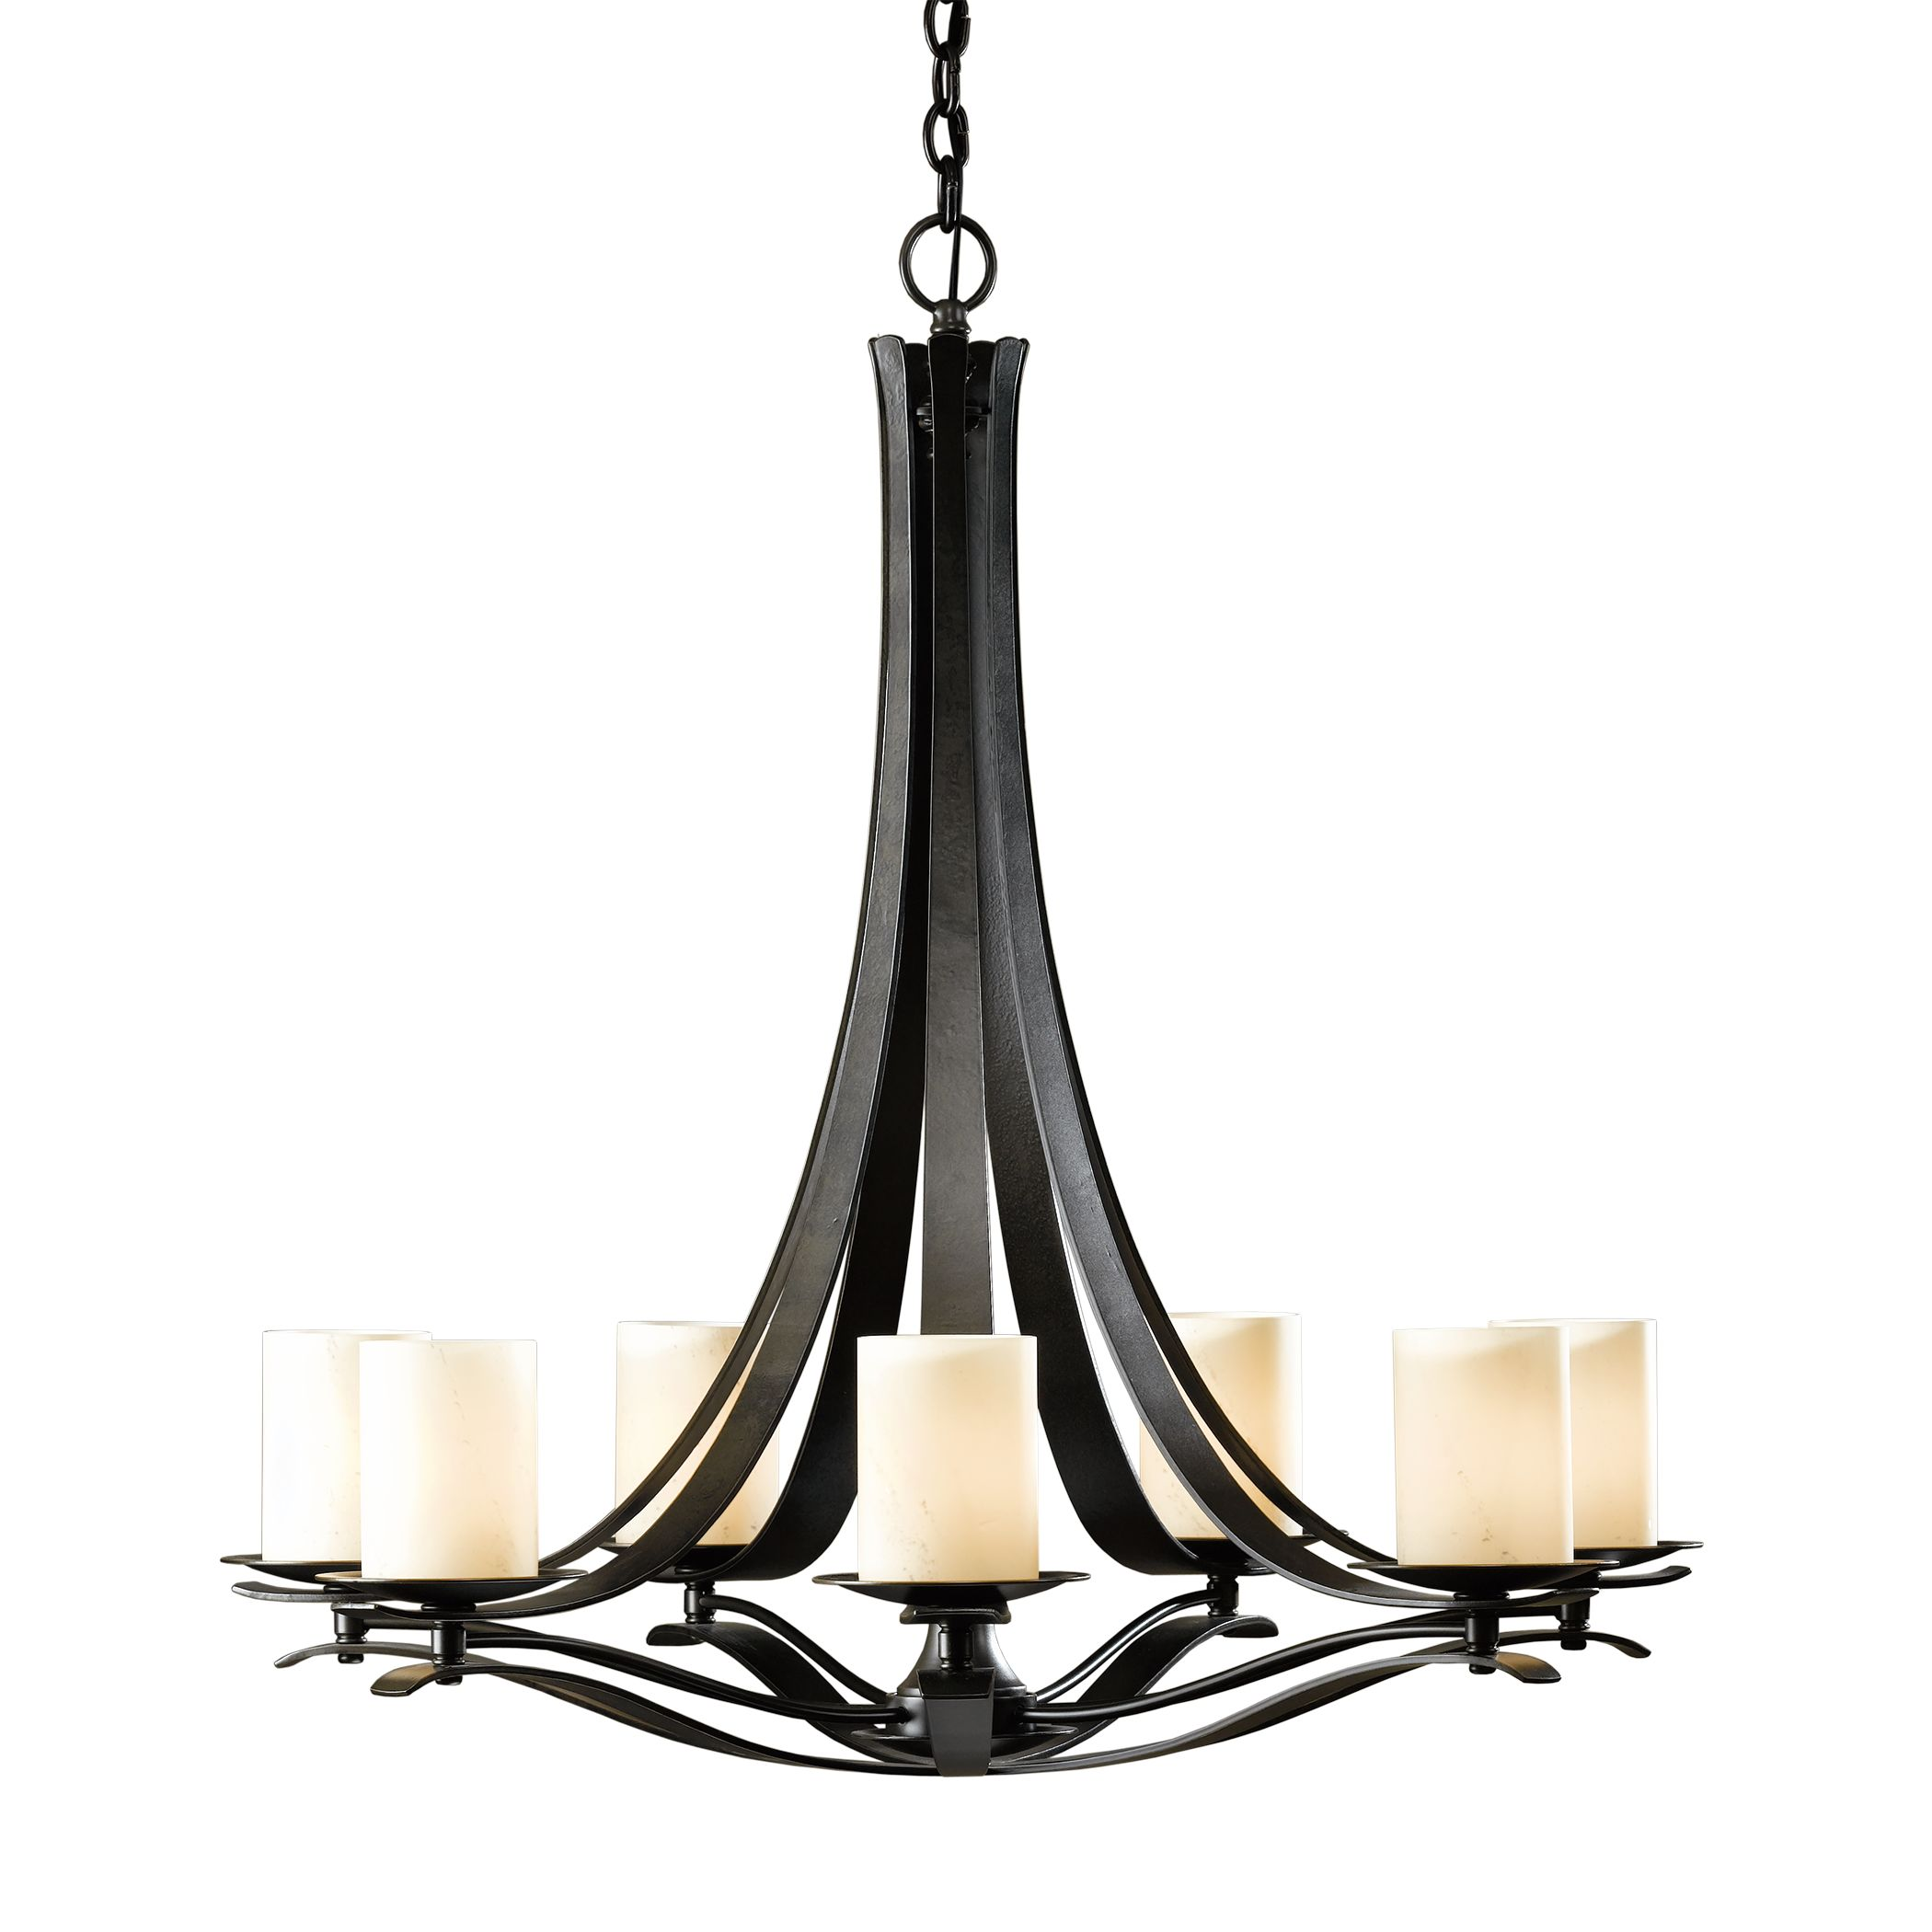 Simple Lines 15 Arm Chandelier Hubbardton Forge